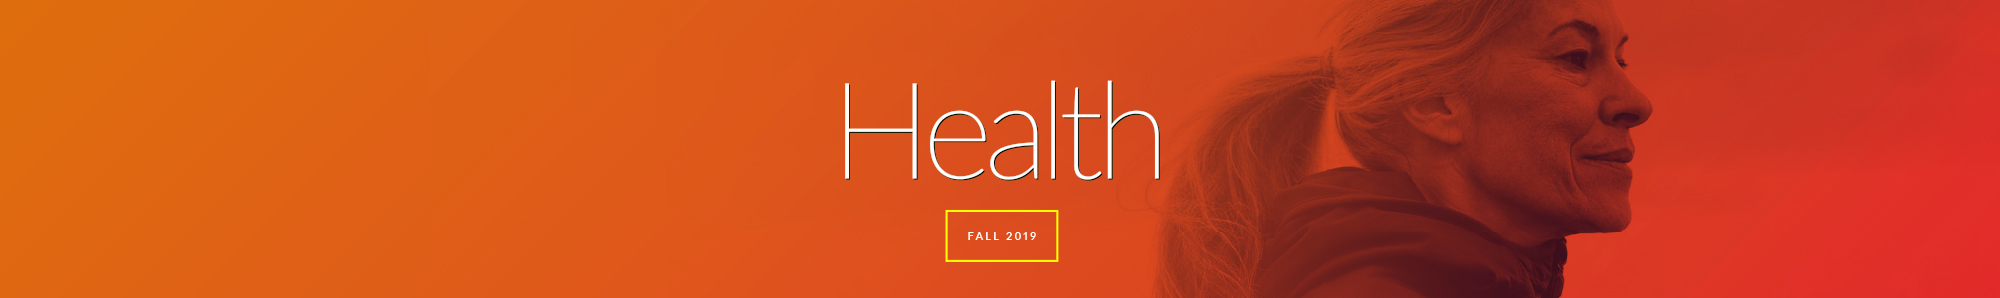 Health Magazine Fall 2019 banner image - orange background with woman